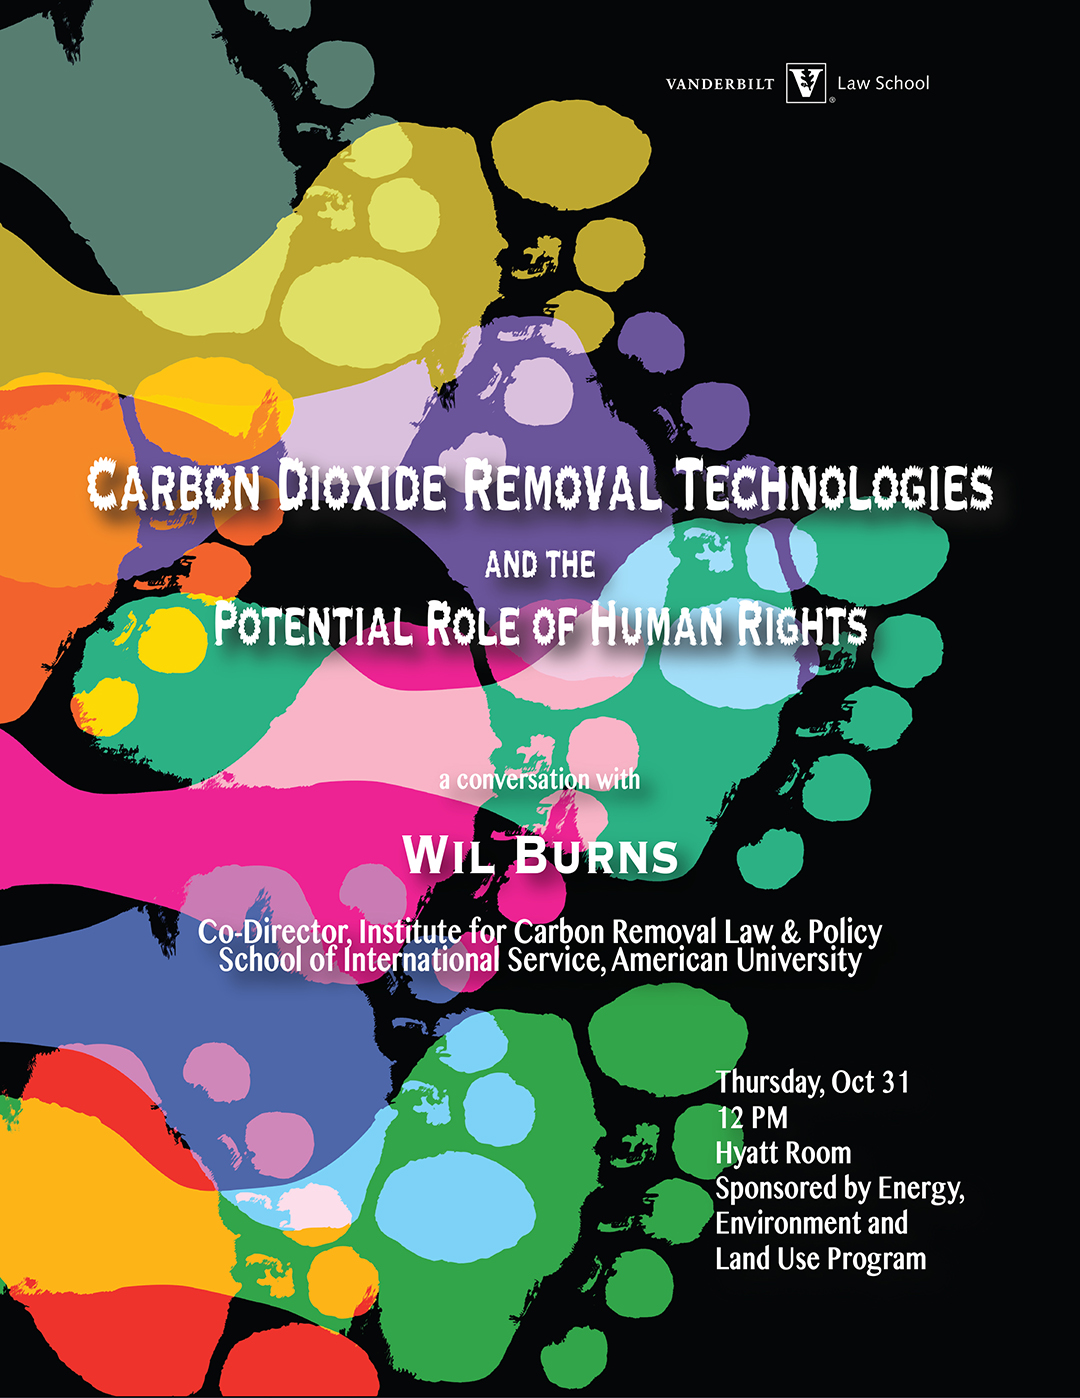 event poster for Carbon Dioxide Removal Technologies